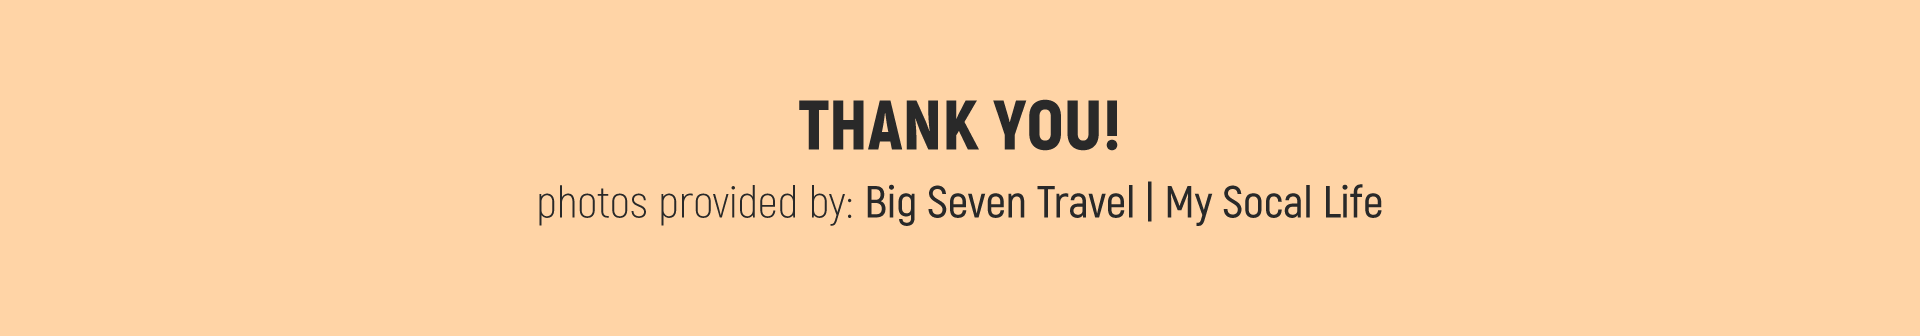 Thank you! Photos provided by Big Seven Travel and My Socal Life.